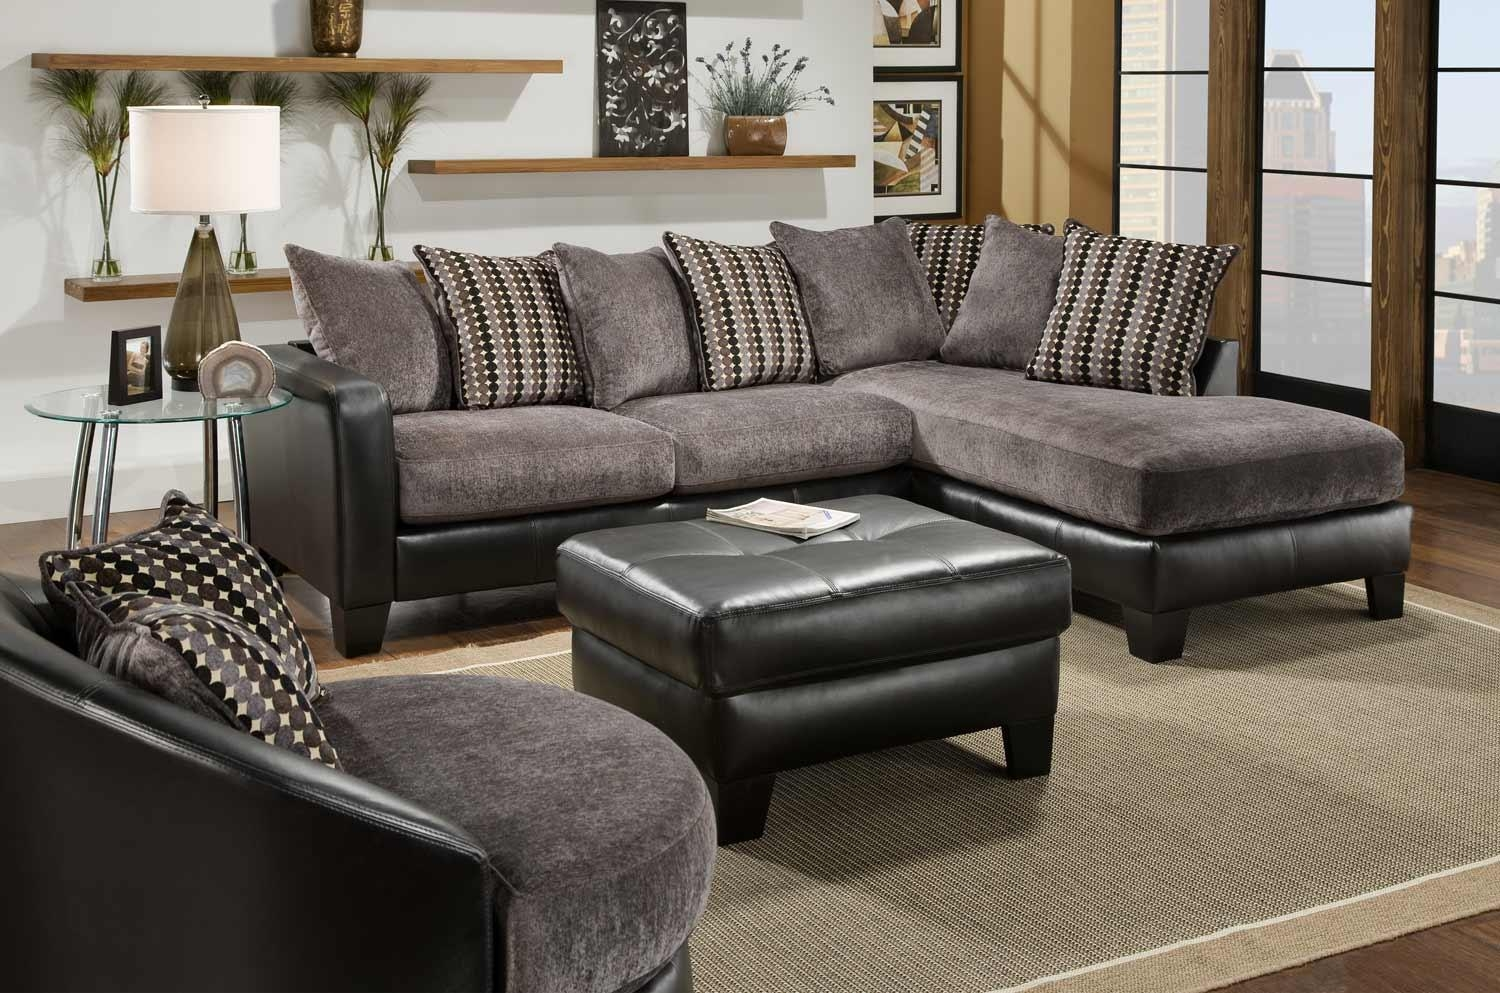 20 collection of leather and suede sectional sofa ideas for Suede sectional